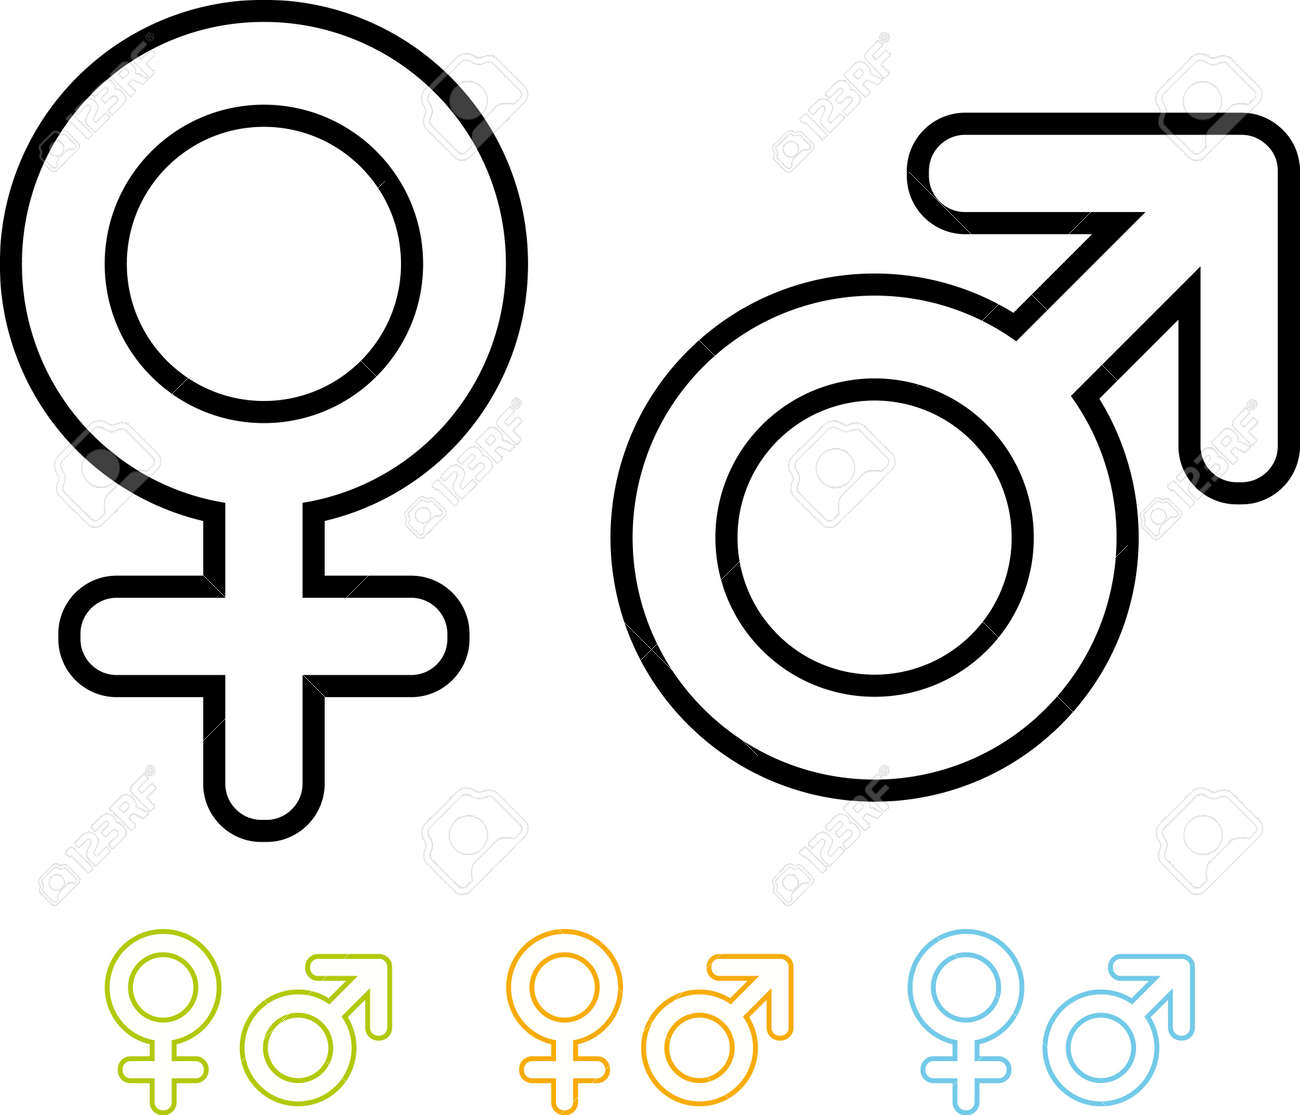 Male And Female Gender Symbols Vector Icons Royalty Free Cliparts